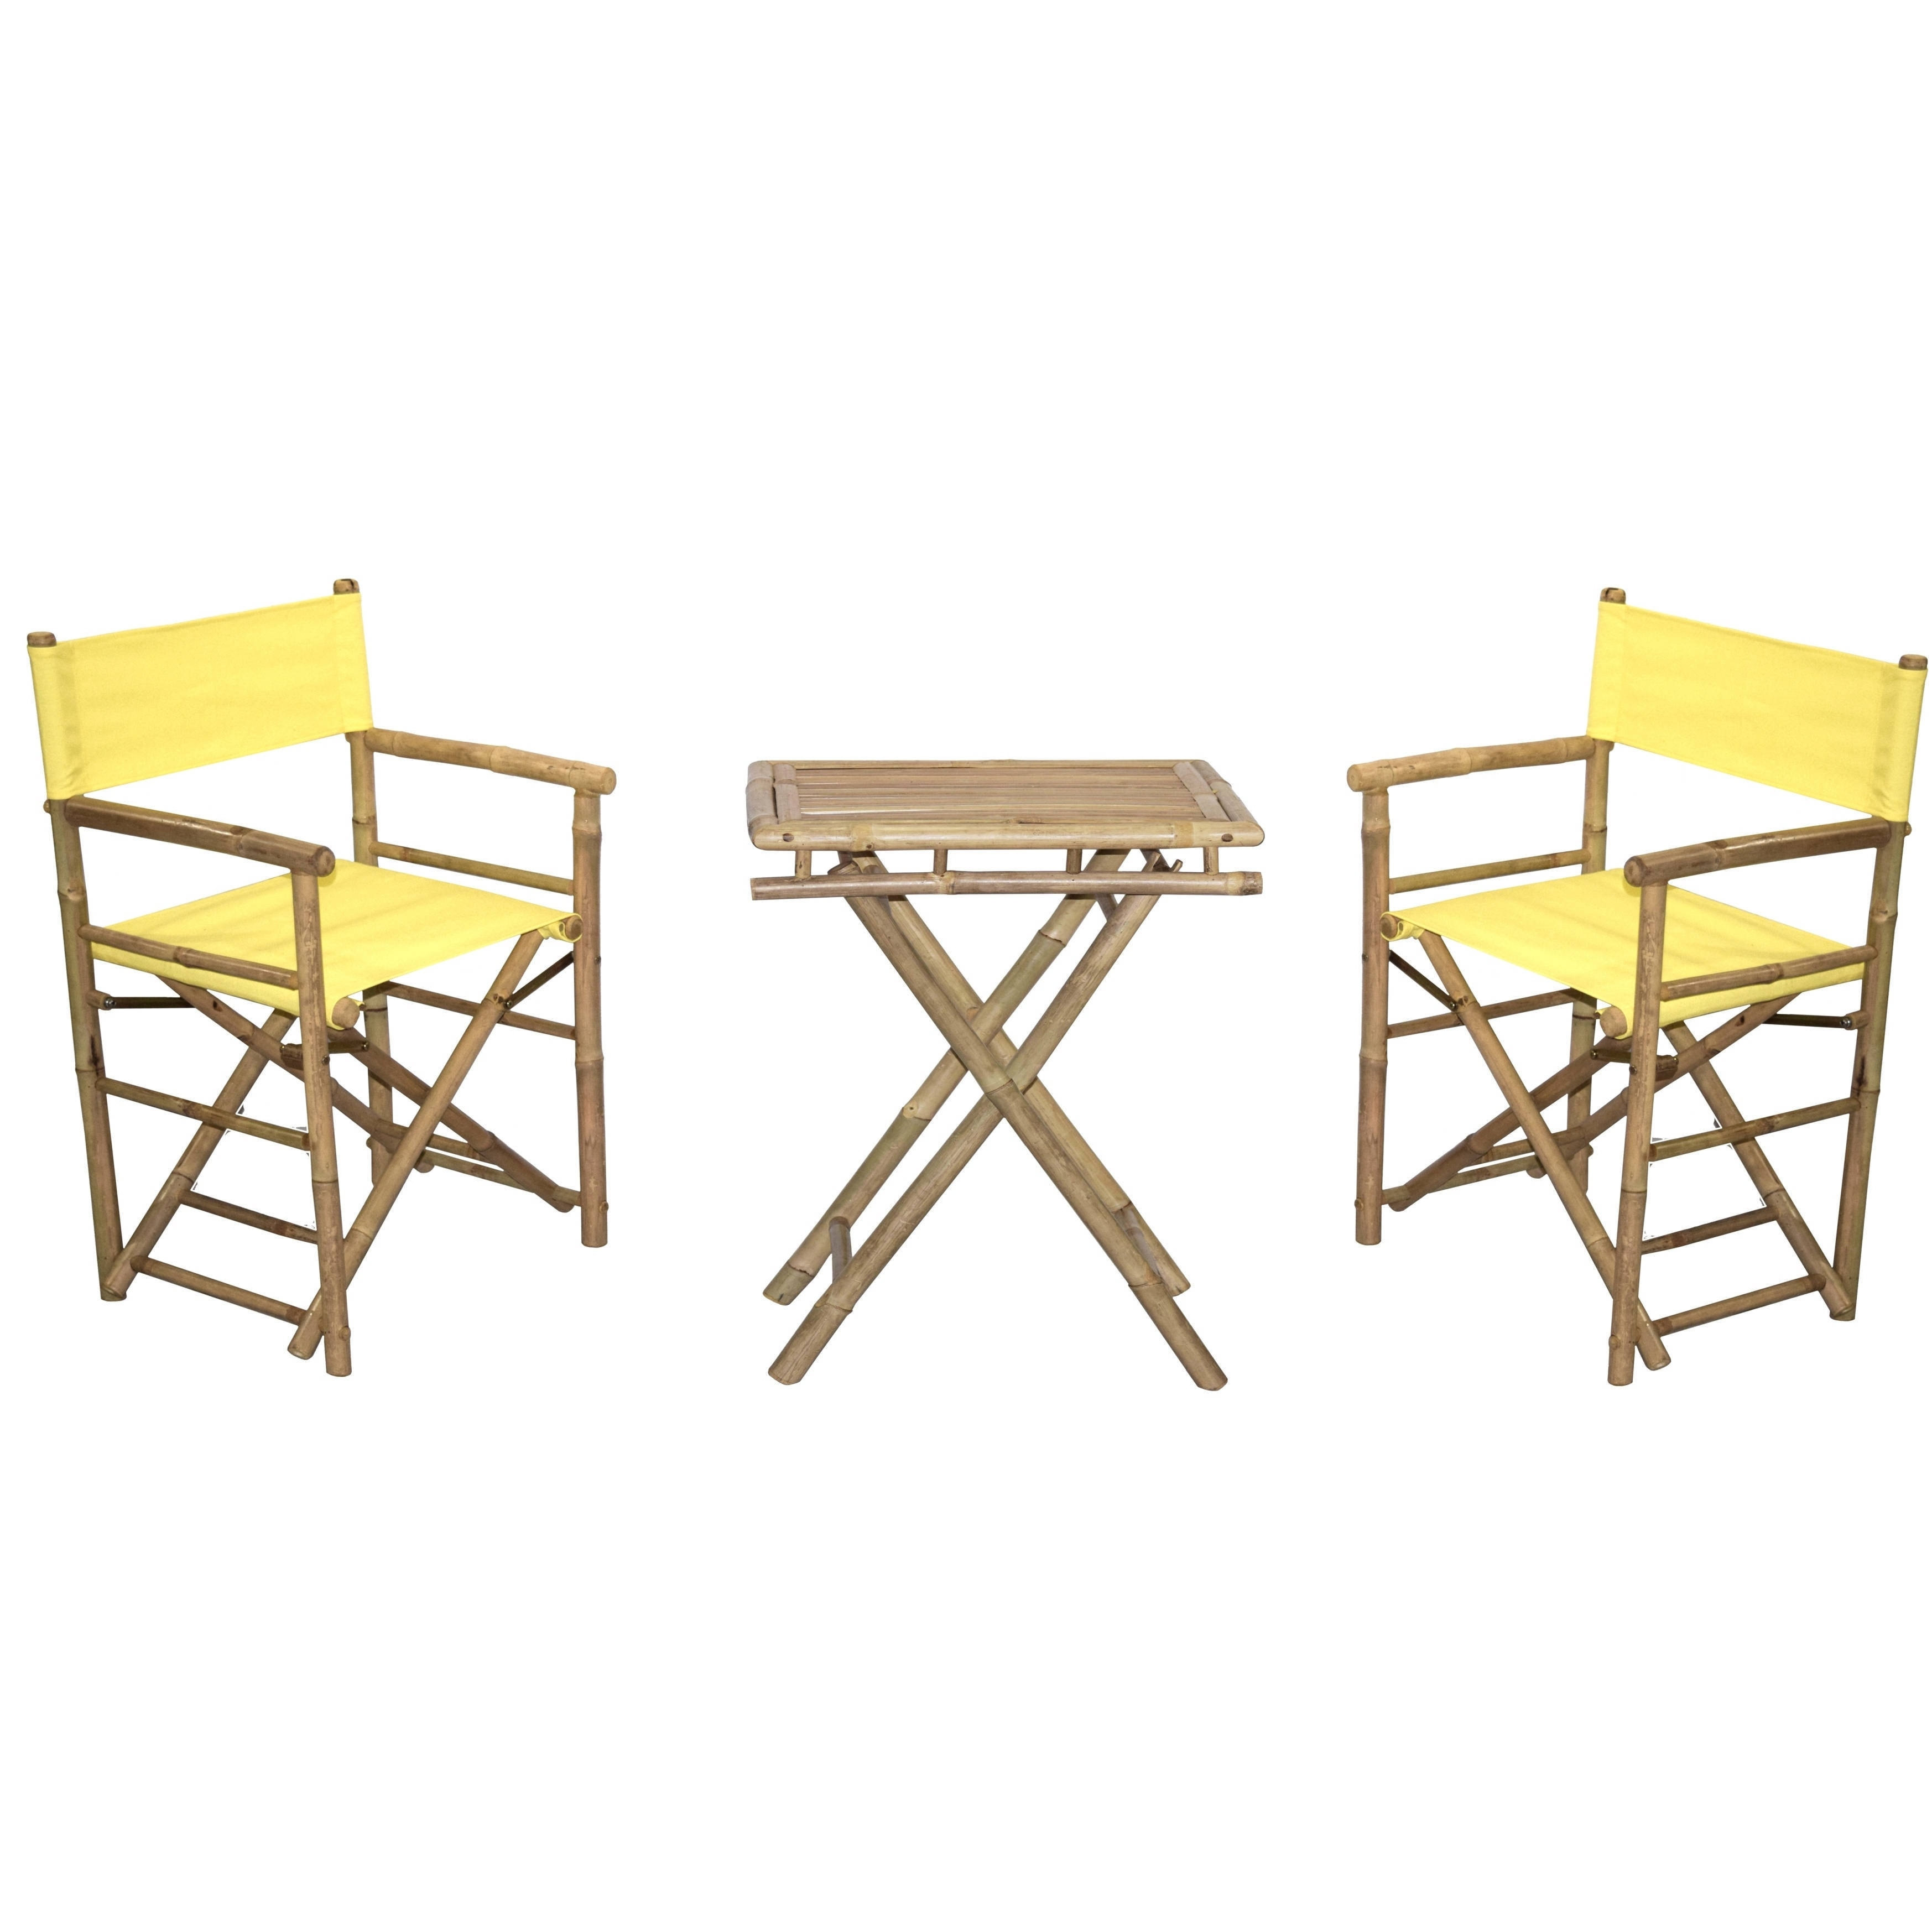 Shop Handmade Bamboo Bistro Director\'s Chairs and Small Table Set ...